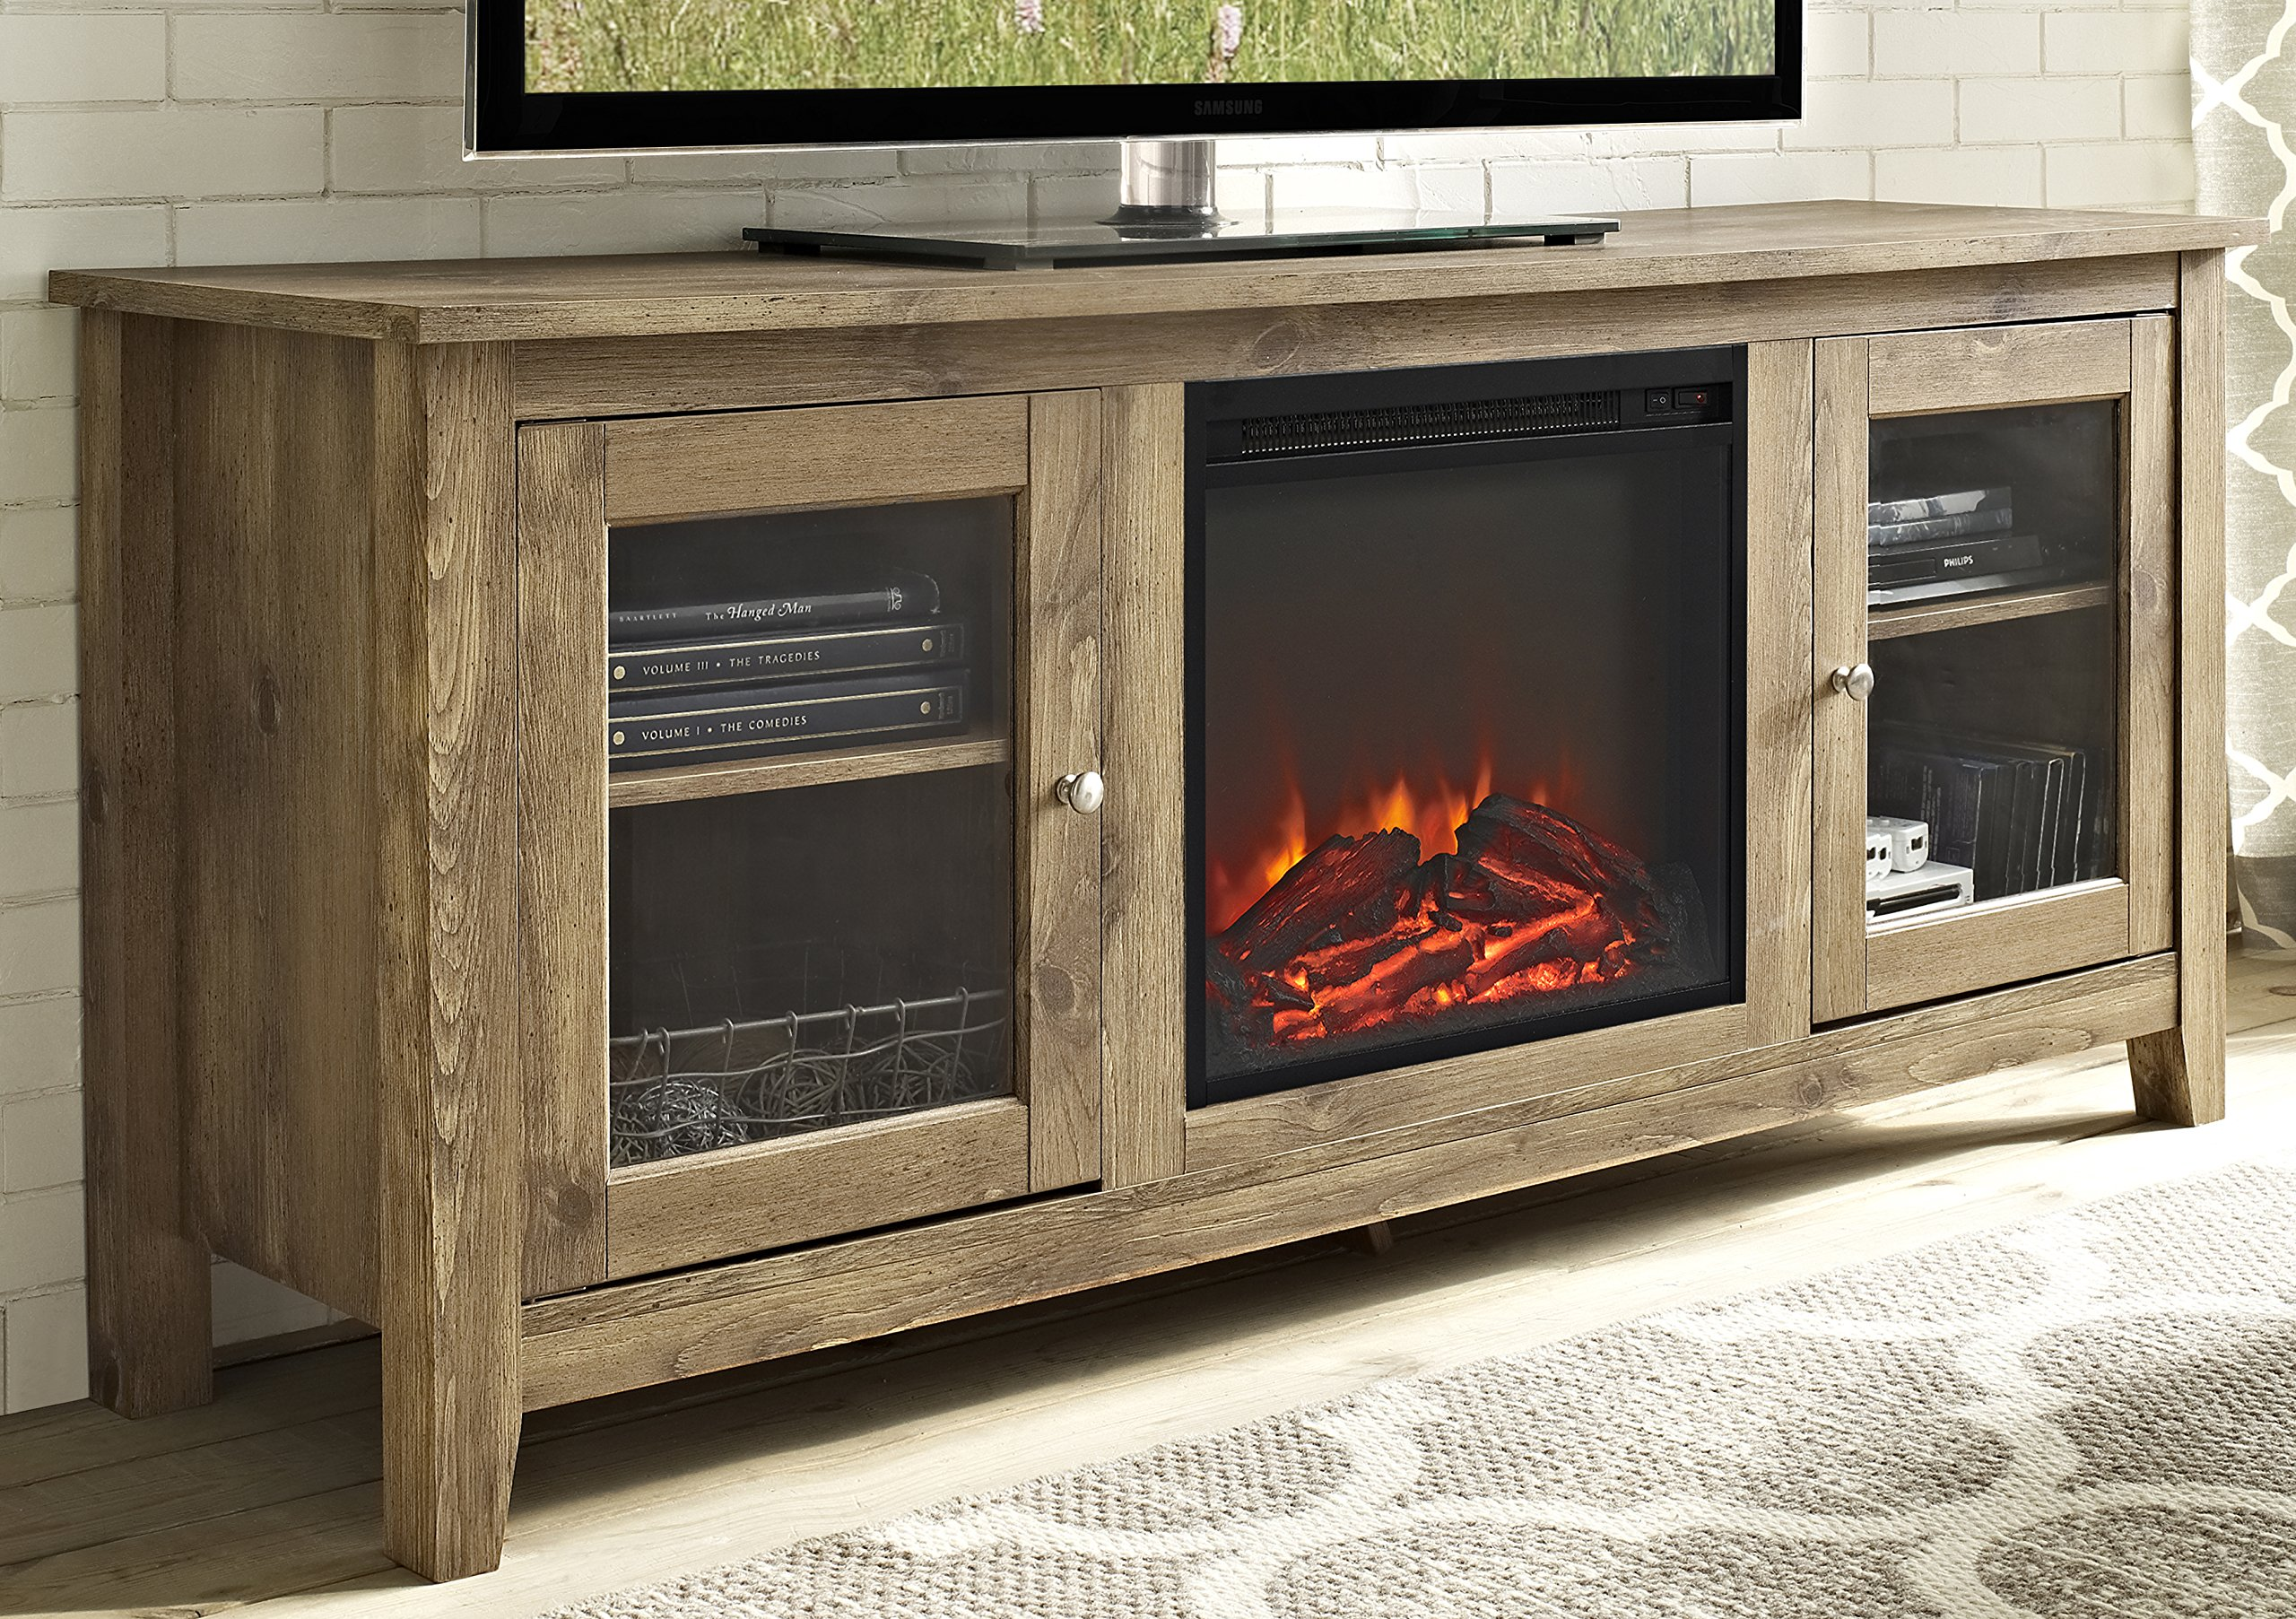 WE Furniture 58'' Wood Media TV Stand Console with Fireplace - Barnwood